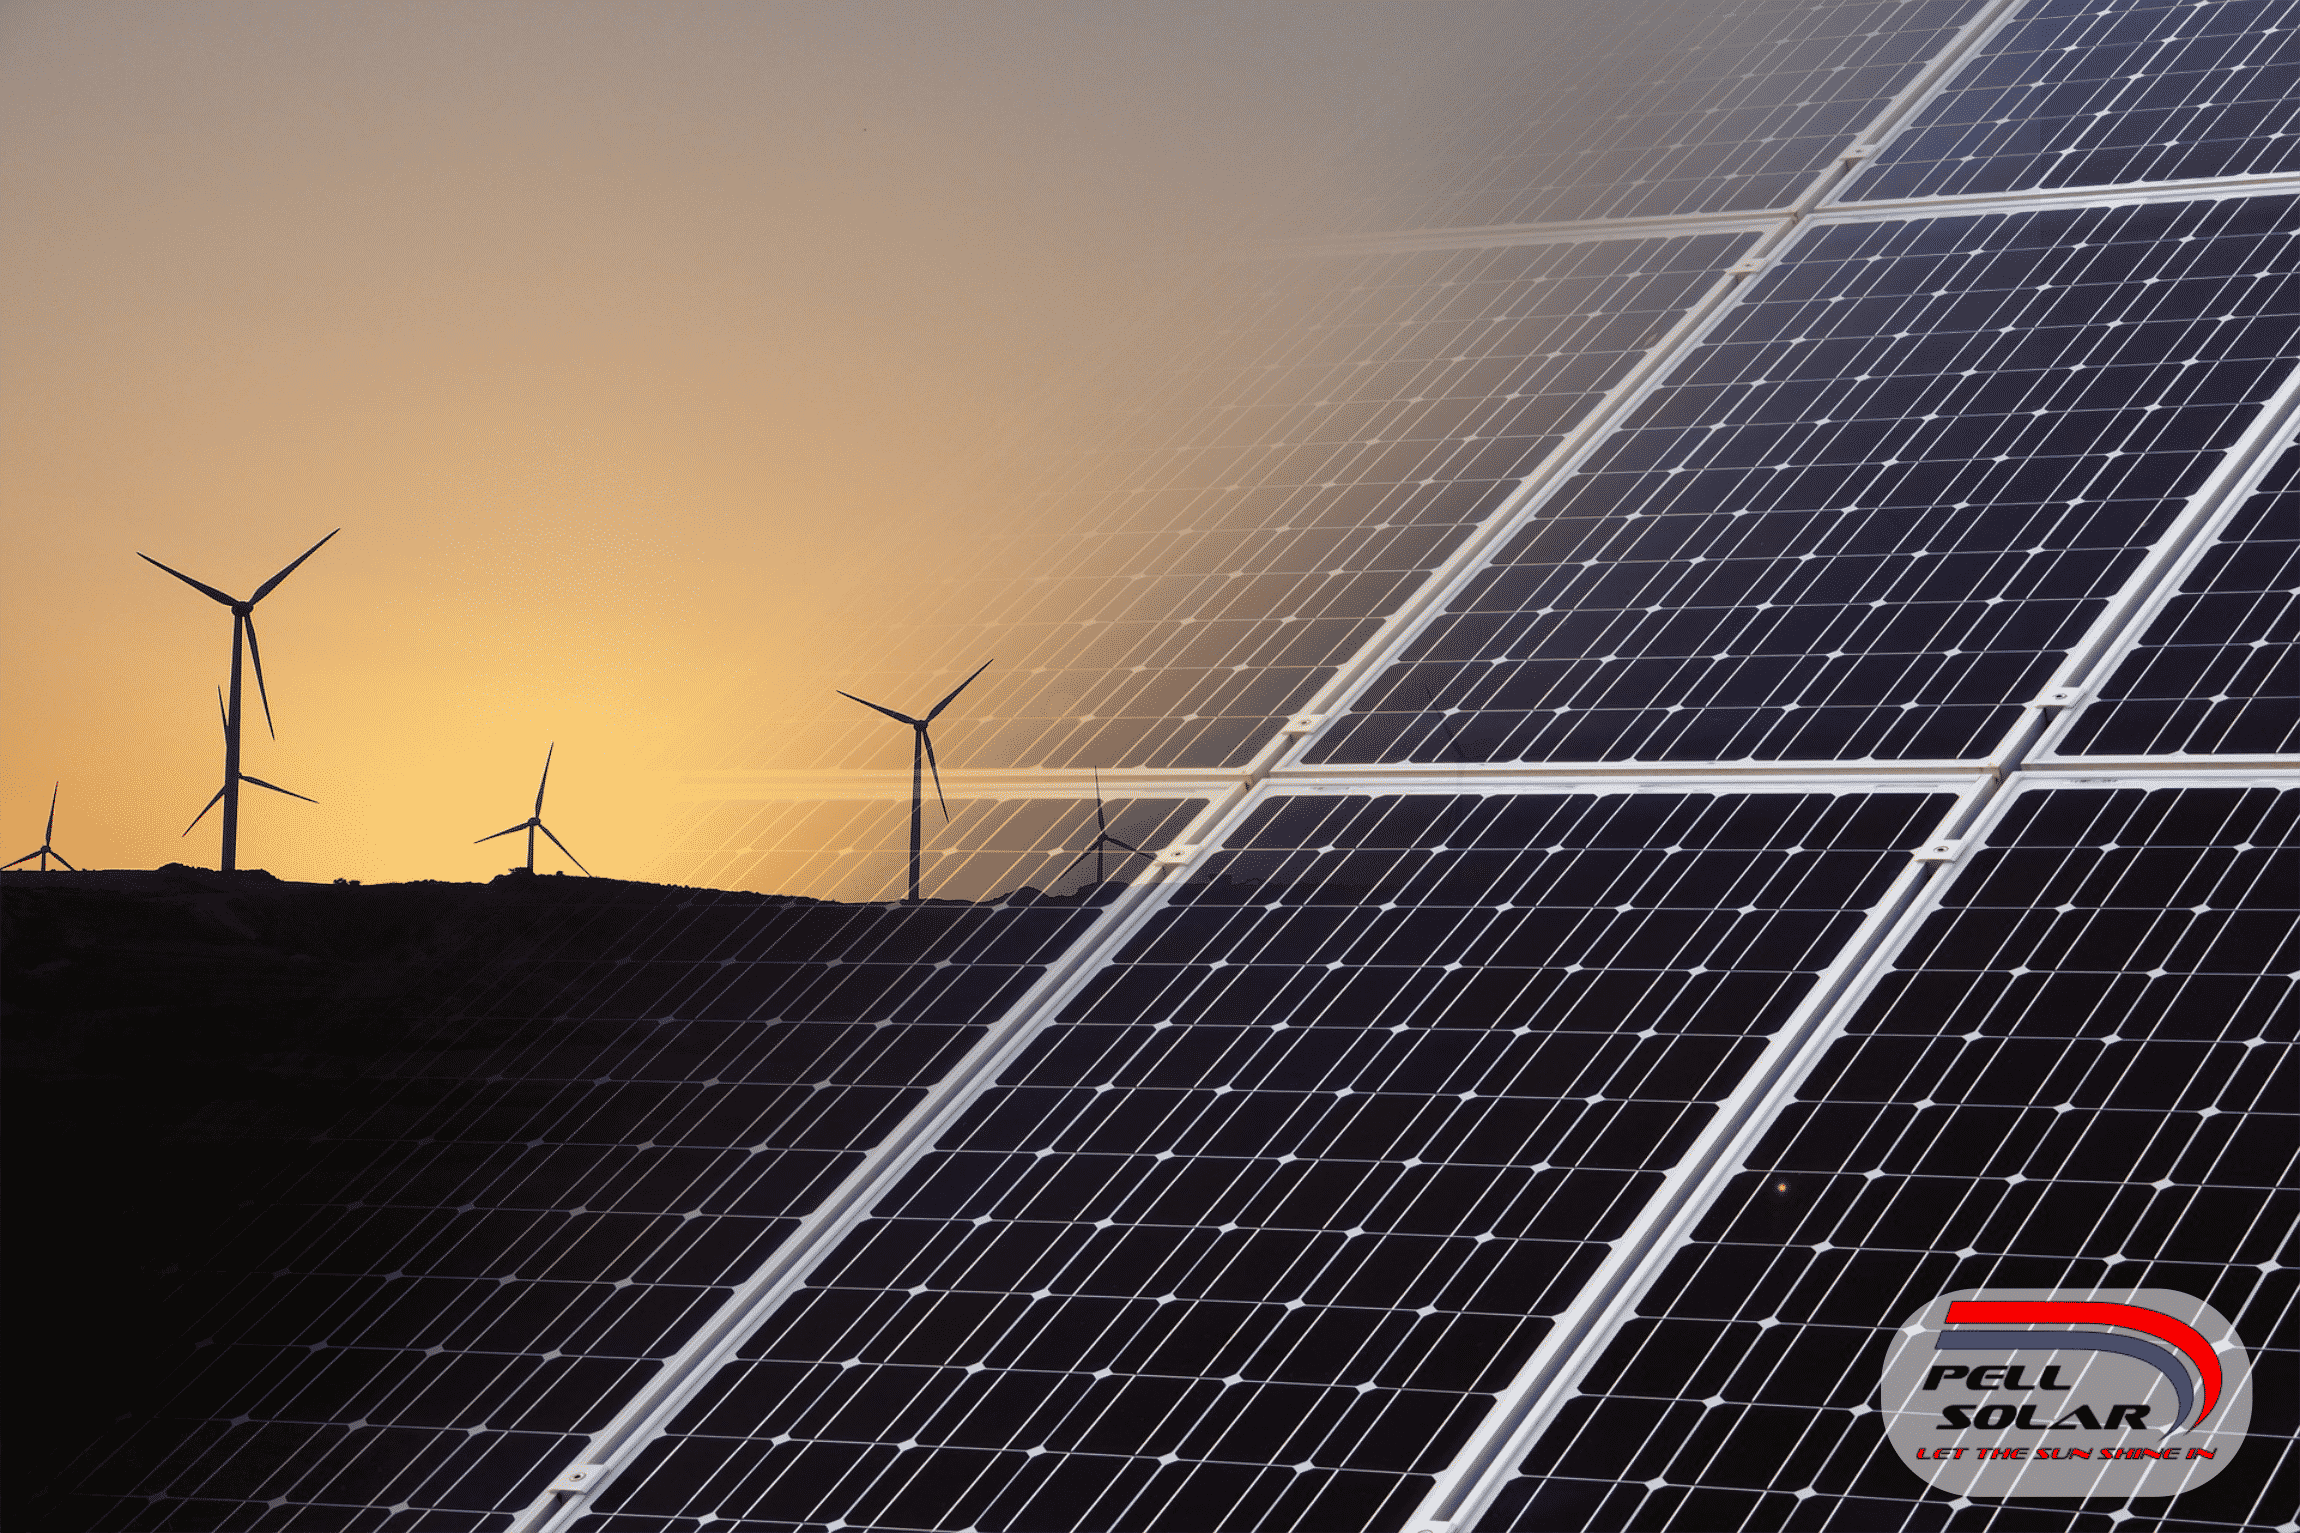 Solar Panel in front of wind turbines